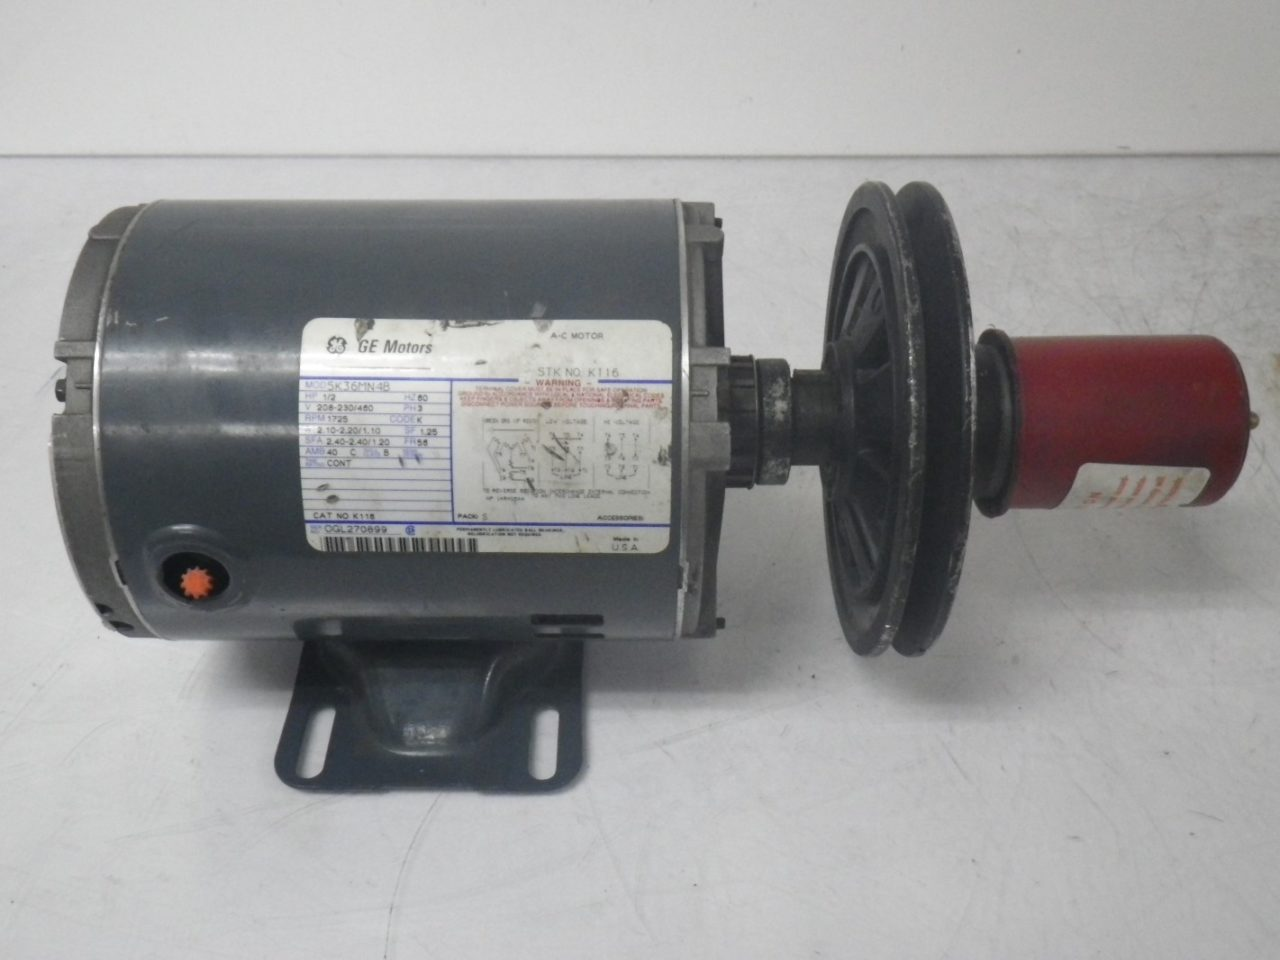 IMGP65595K36MN4B 160 58B GE Motor With LOVEJOY Pulley Type 160 58b 12hp 208-230460v 1725rpm (8)